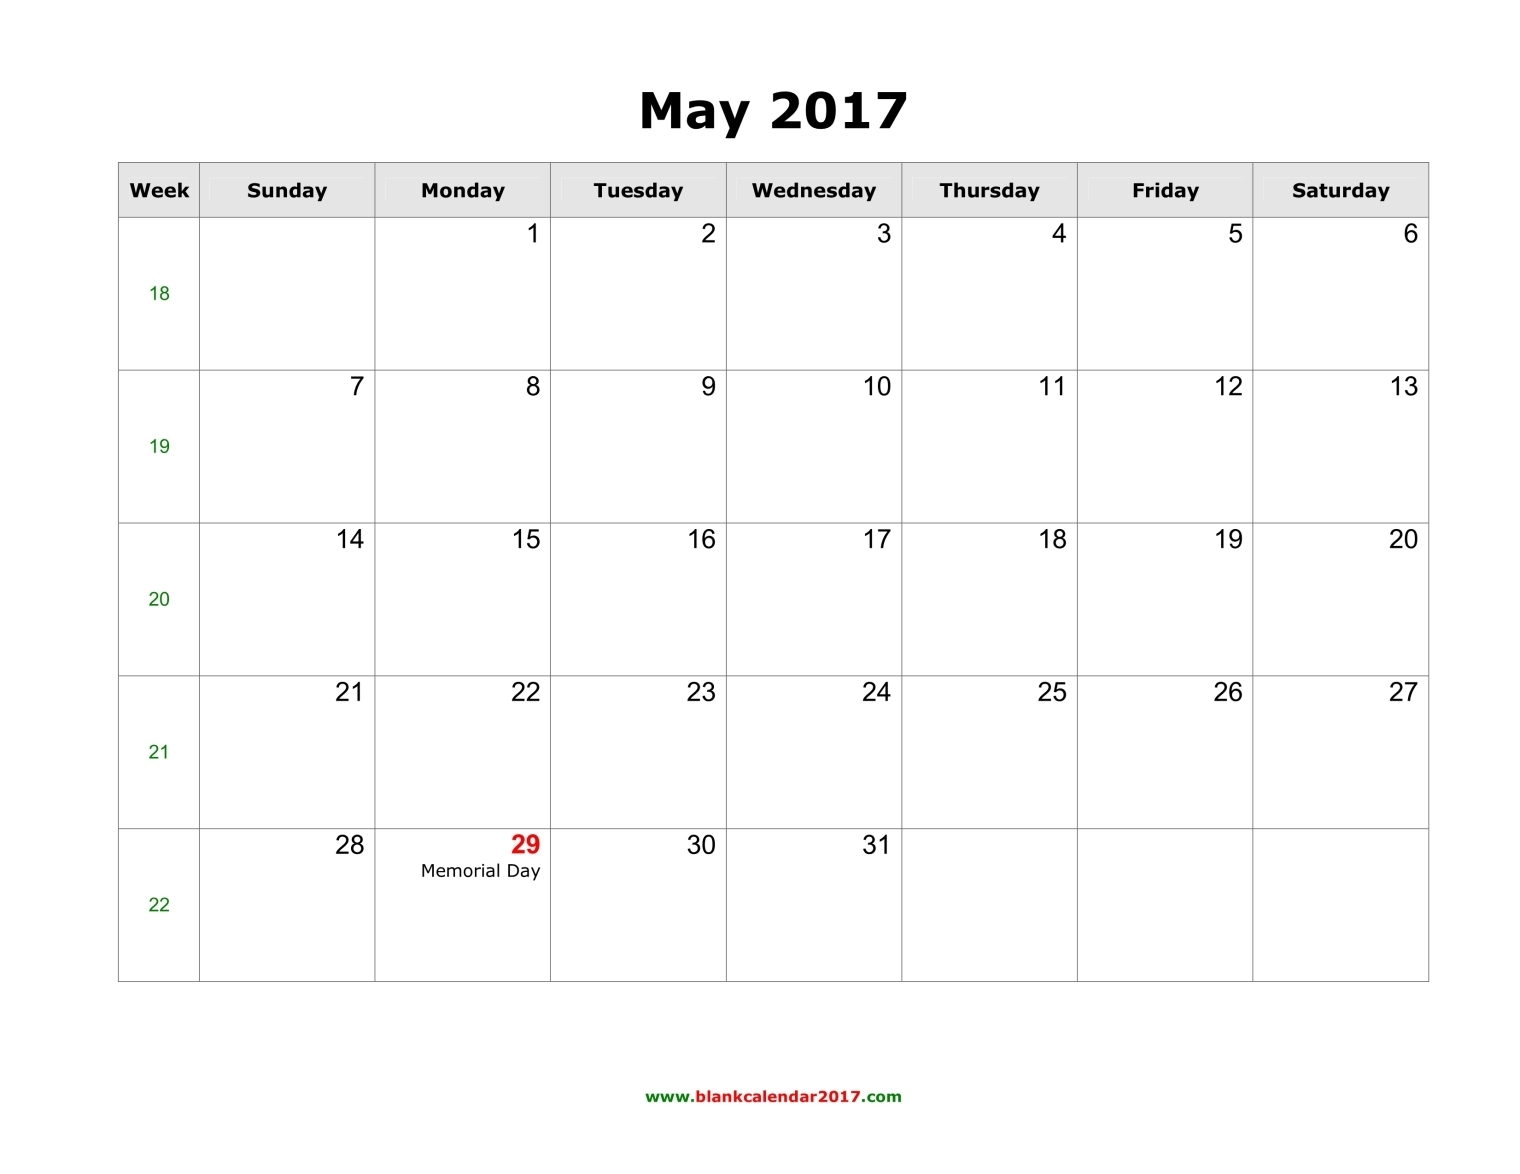 May Calendar 2017 with Holidays